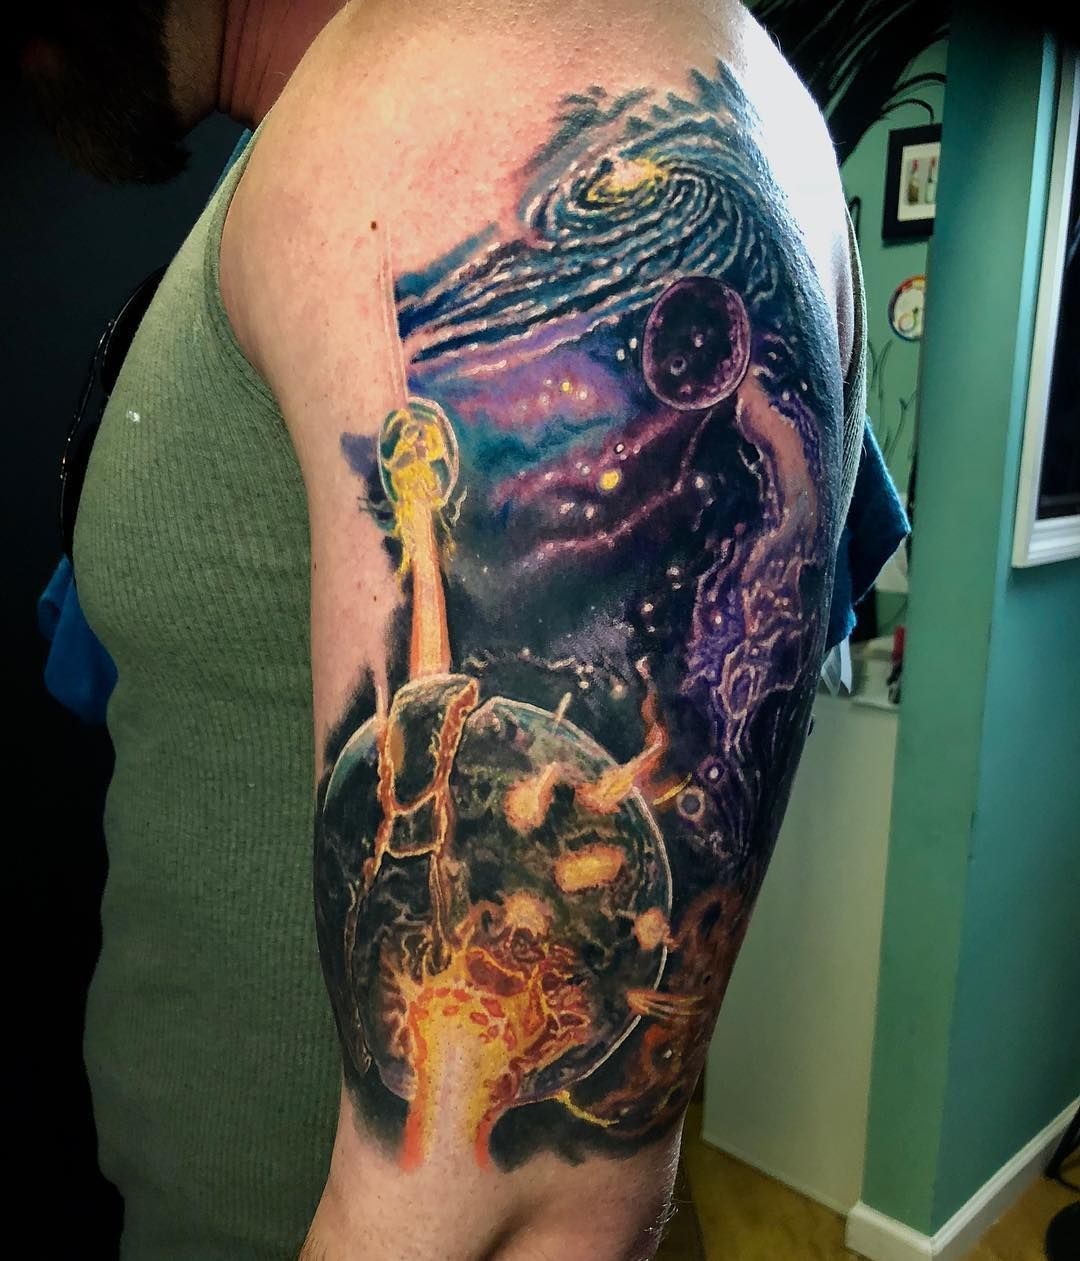 Reposting ltwoodsart this is a space sleeve in progress